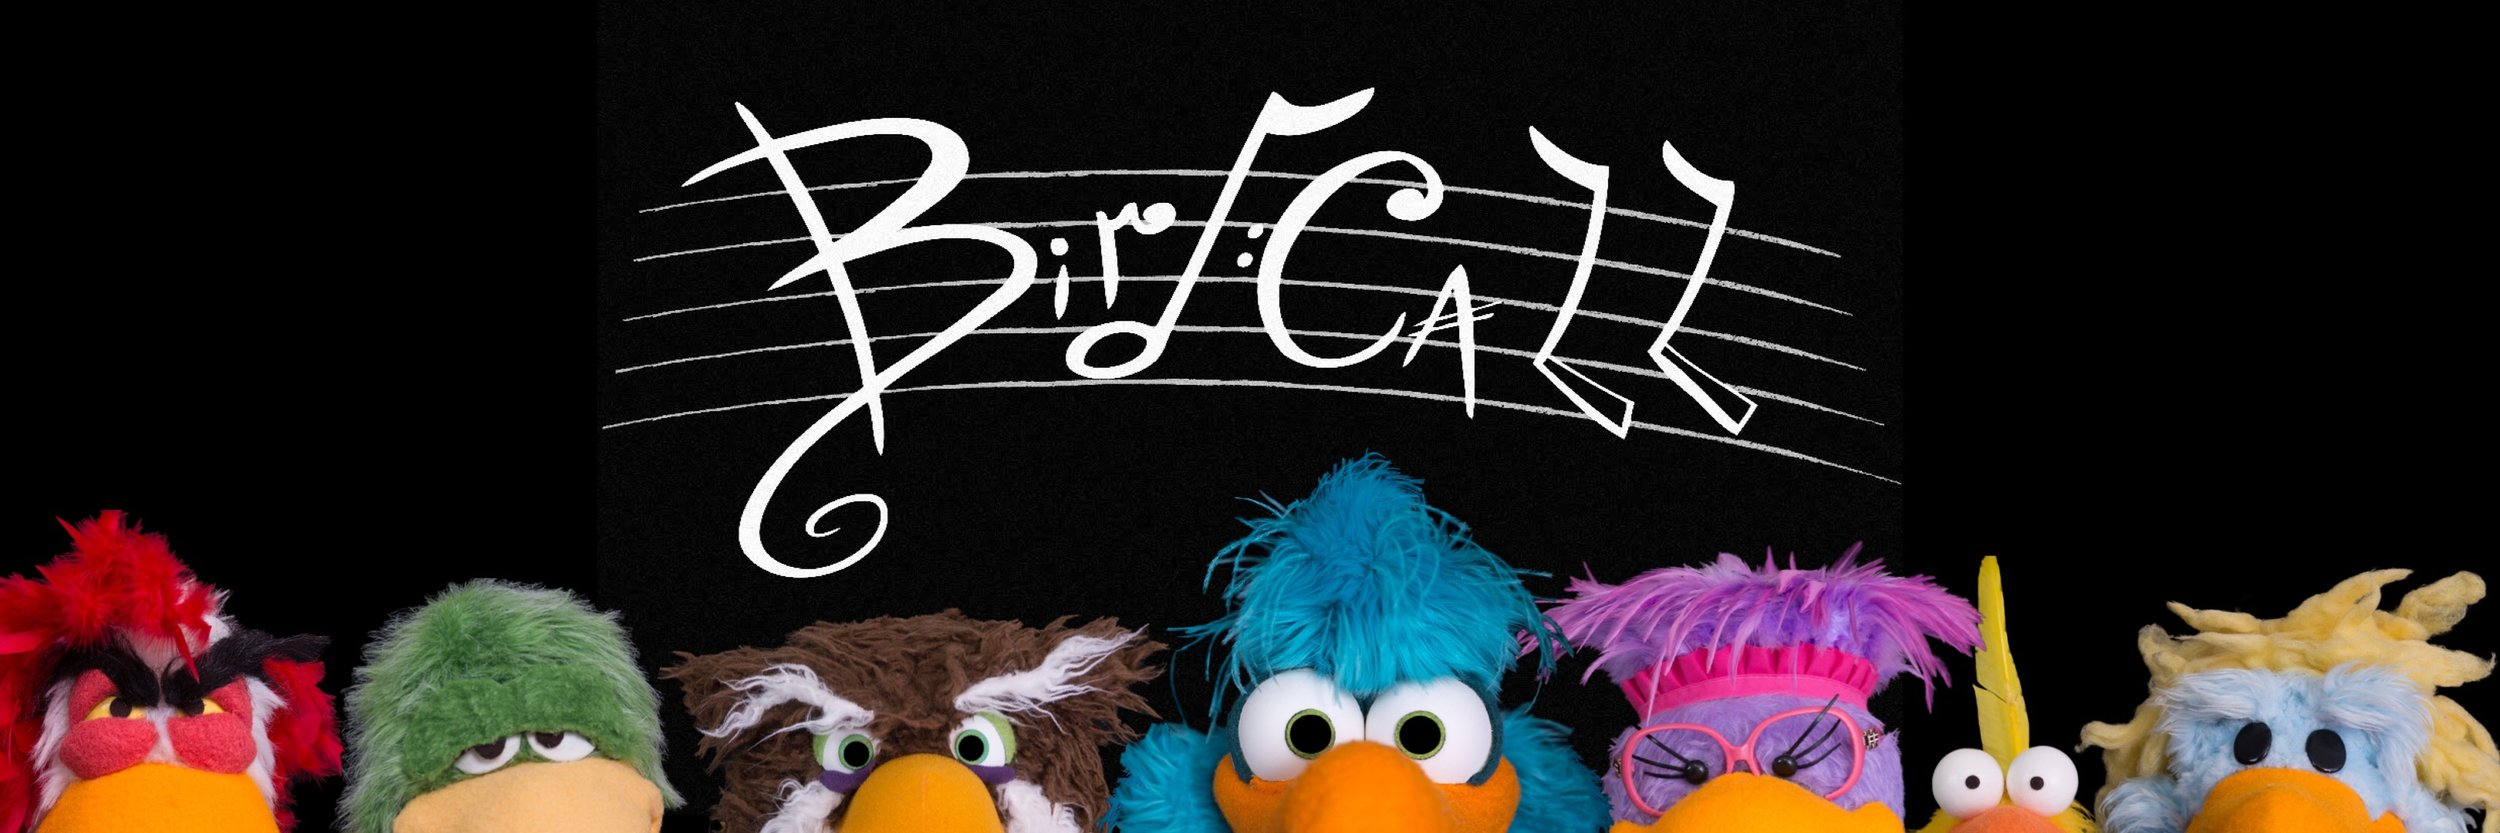 Bird Call Series Synopsis:A flock of diverse birds (Luckl,Fowl Owl, Francise,Speck,Kesmoe,and Koo Foo) work for the radio station W.I.N.G run by a bumbling male chicken Mr. Sampy Chicker. The birds run the station in the backyard of the humans Wally Zutman and Harriet Dinseldorf, who have no clue of the bird's secret lives. Luckl and the gang are in constant competition with the neighboring station K.L.A.W. run by Grizzle and Pinky the Worm. Join the flock and sing out loud and proud your bird call!